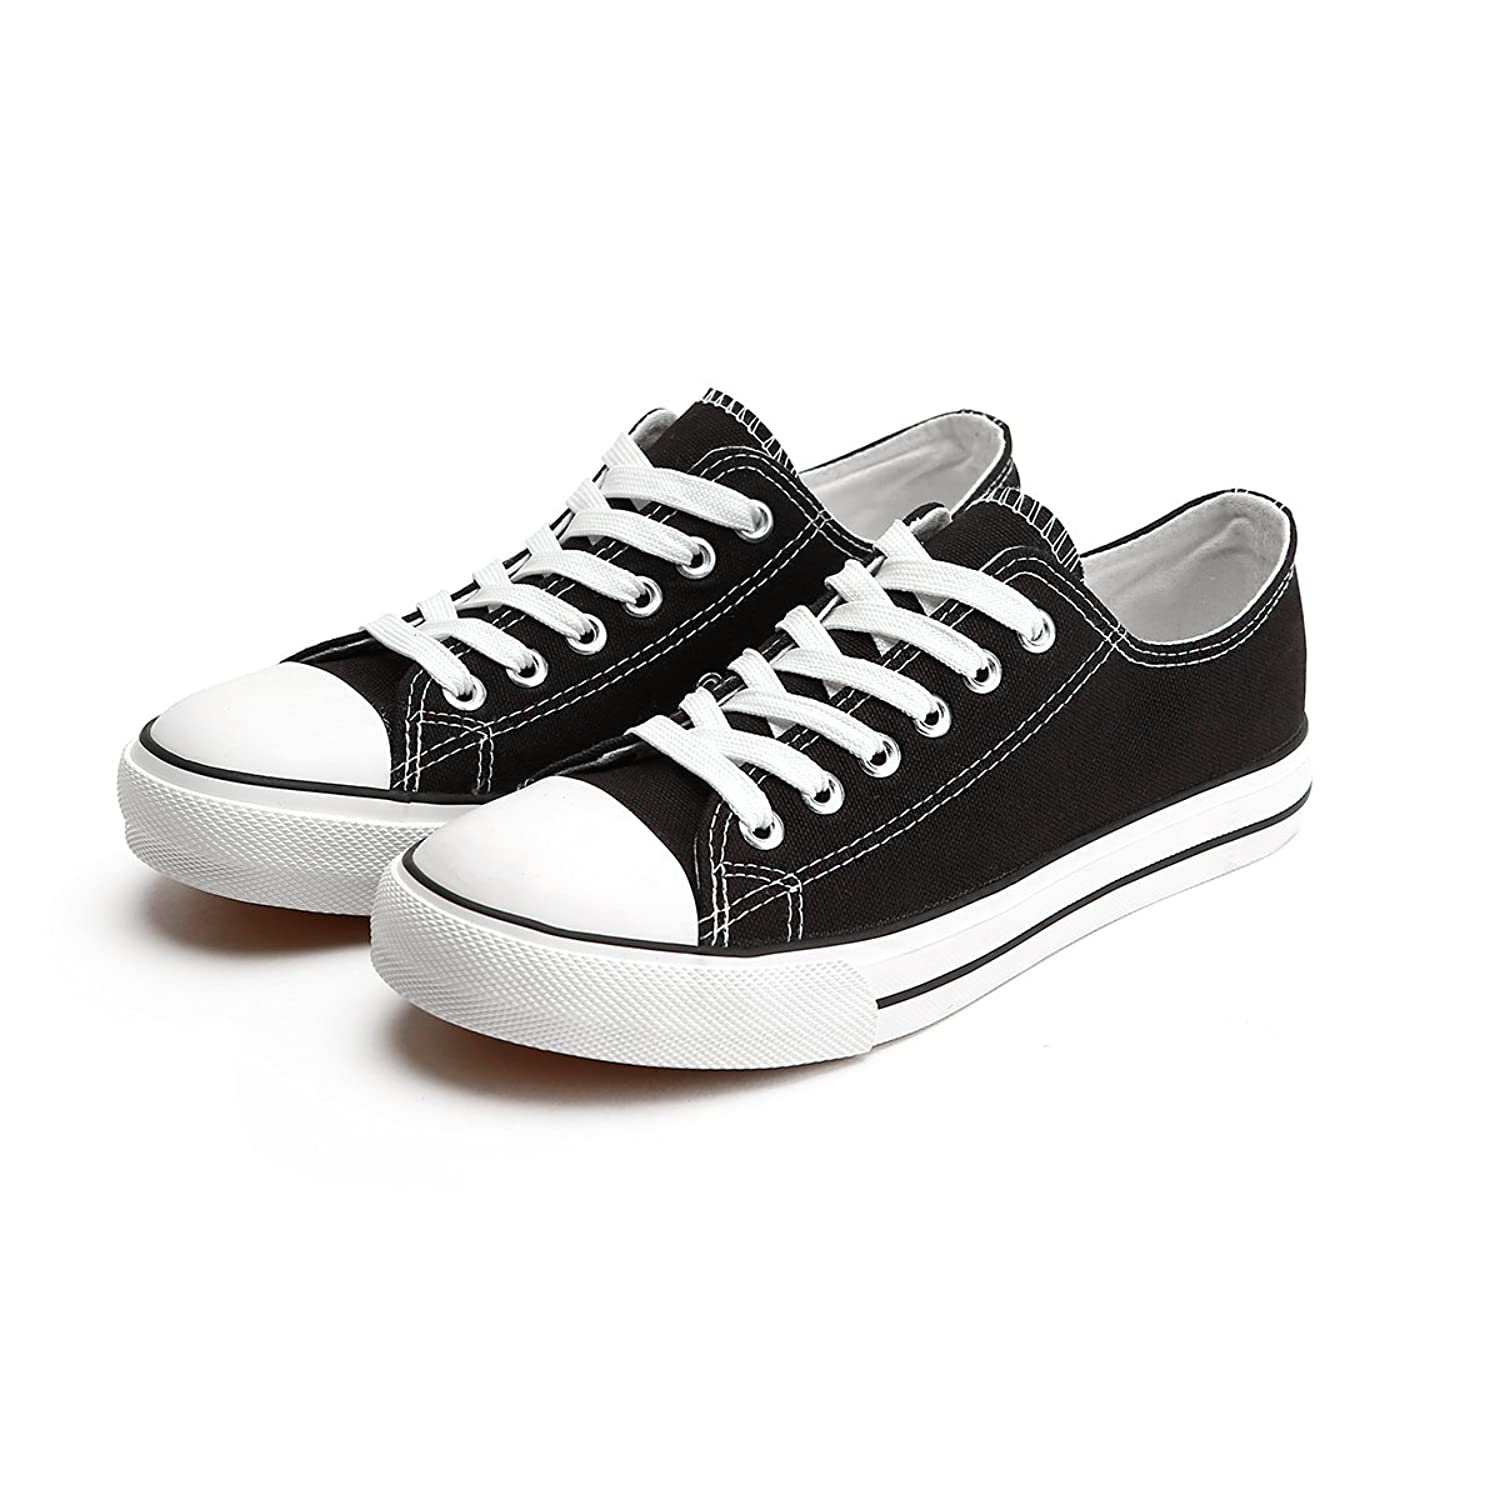 Hot Women's Flat Vintage Canvas Shoes Canvas Casual Sneakers Athletic Lace Up sz